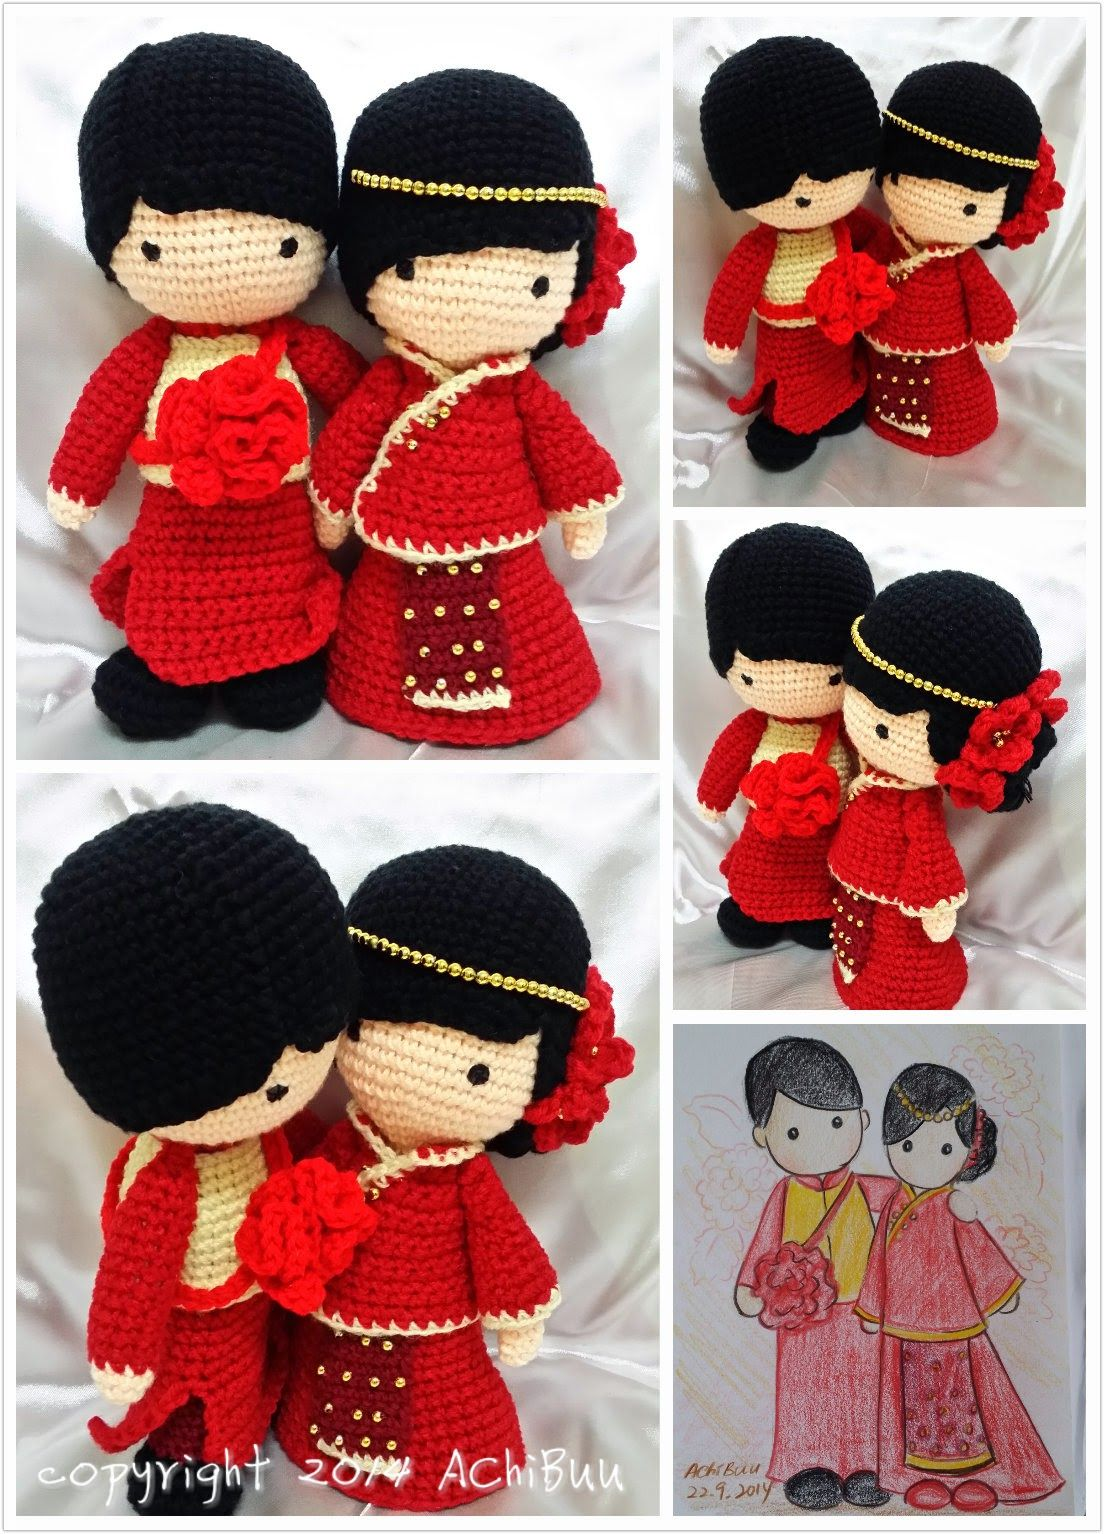 Bride and Groom - HavvaDesigns CROCHET PATTERN / Amigurumi PDF ... | 1534x1104